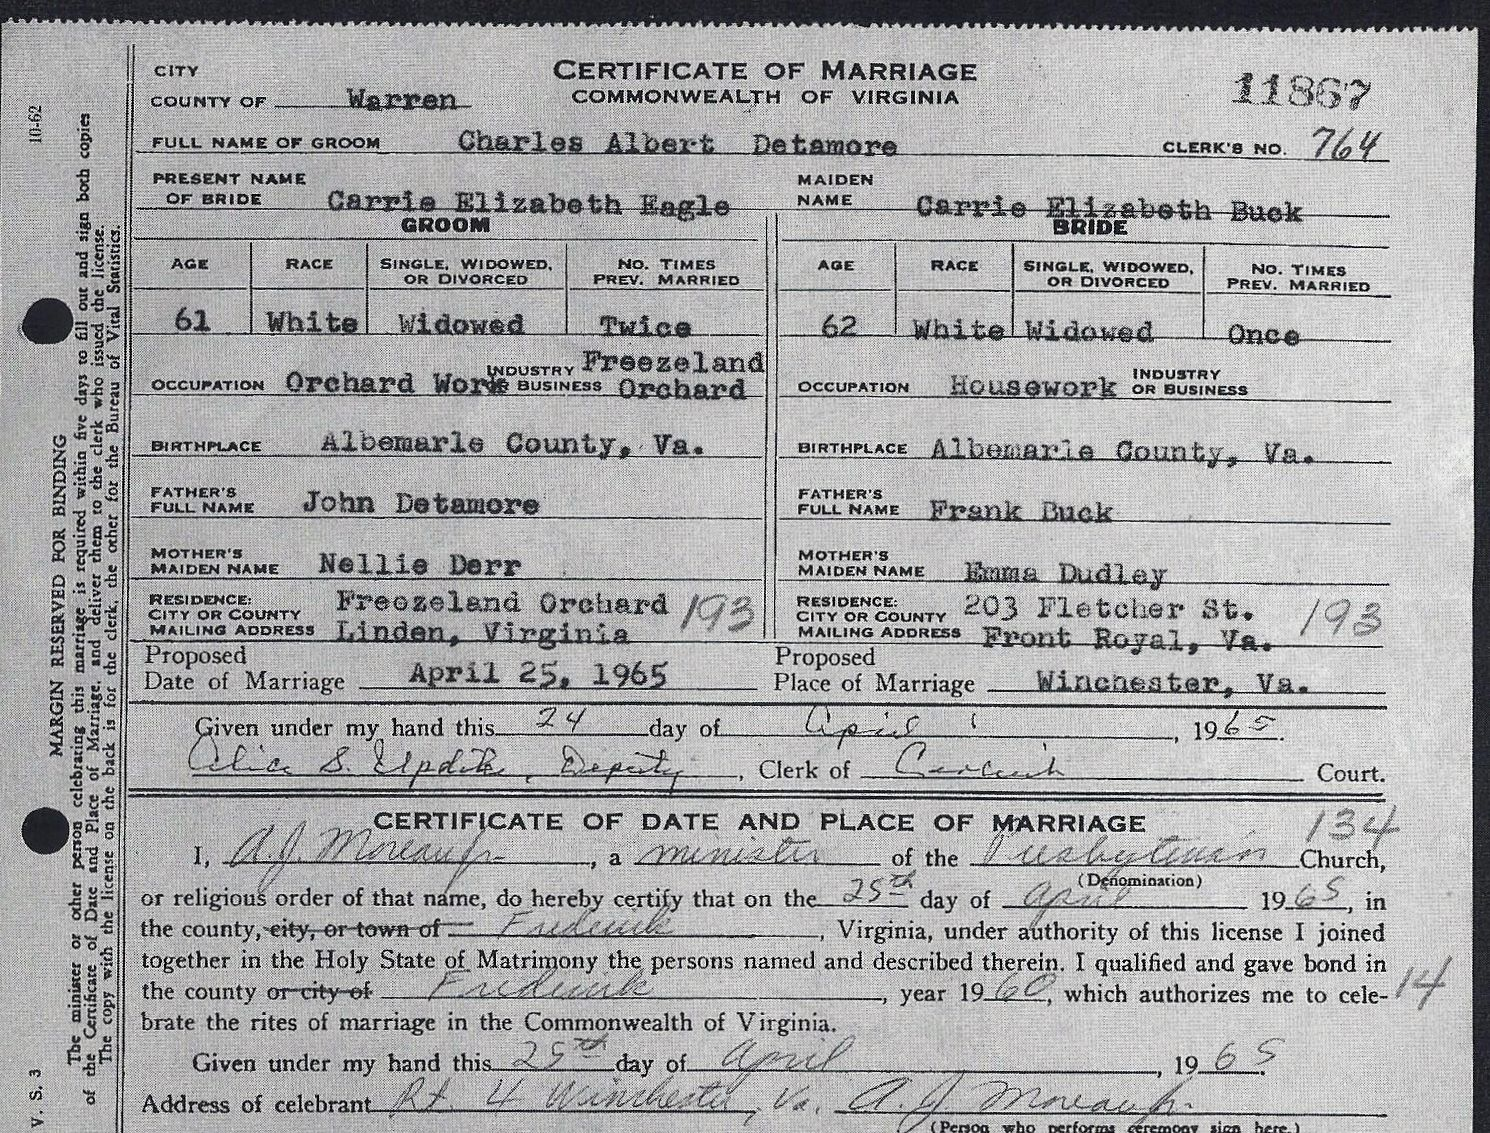 Certificate Of Marriage For Charles Albert Detamore And Carrie